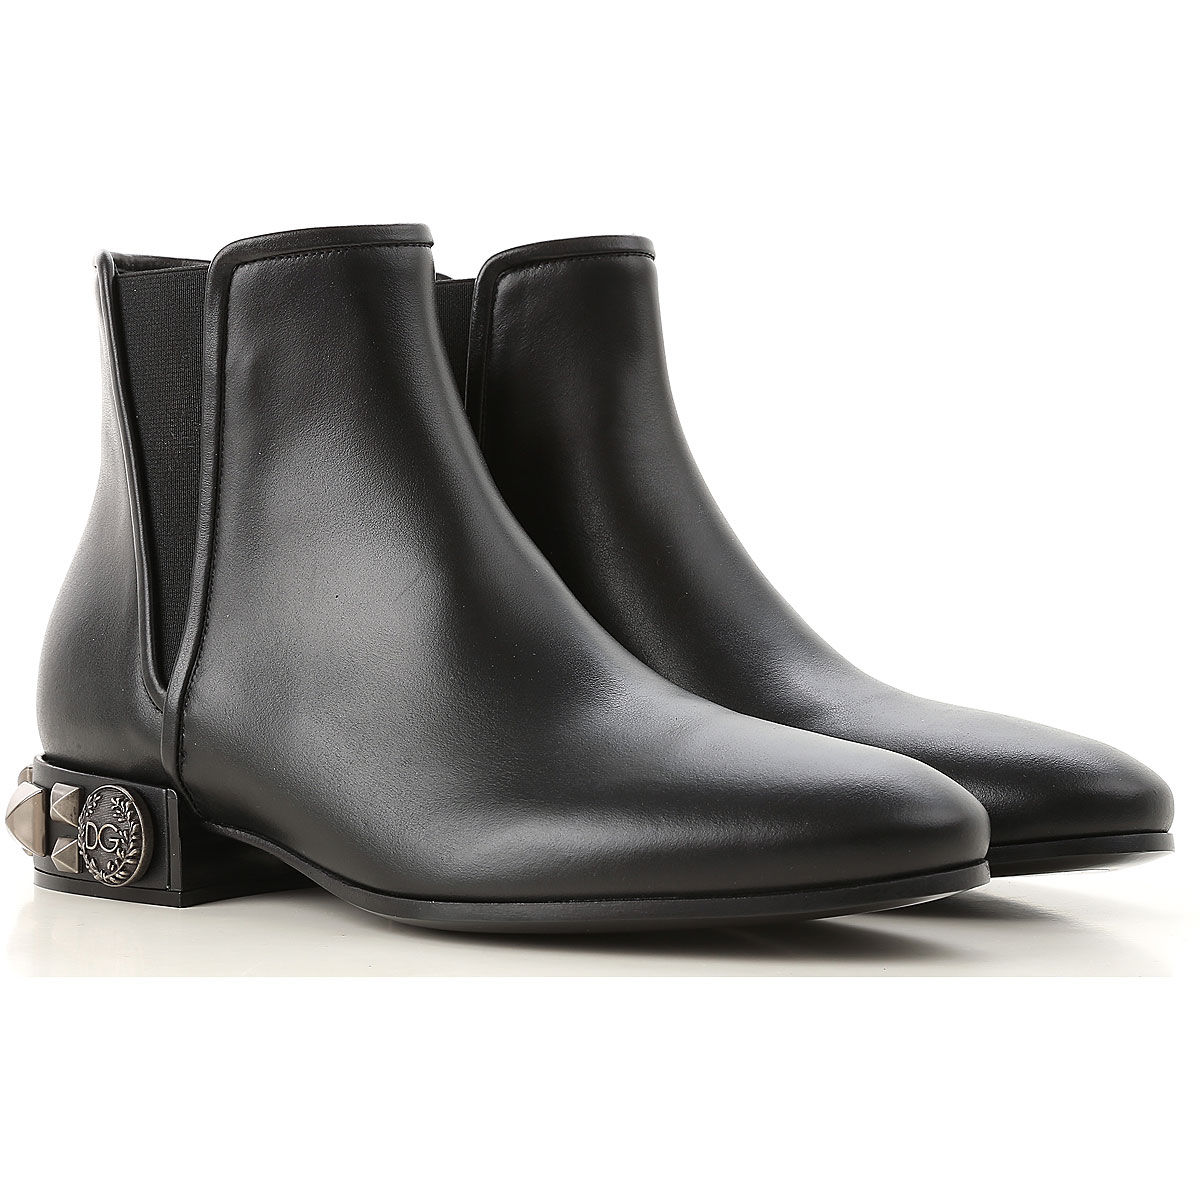 Dolce & Gabbana Chelsea Boots for Women Black USA - GOOFASH